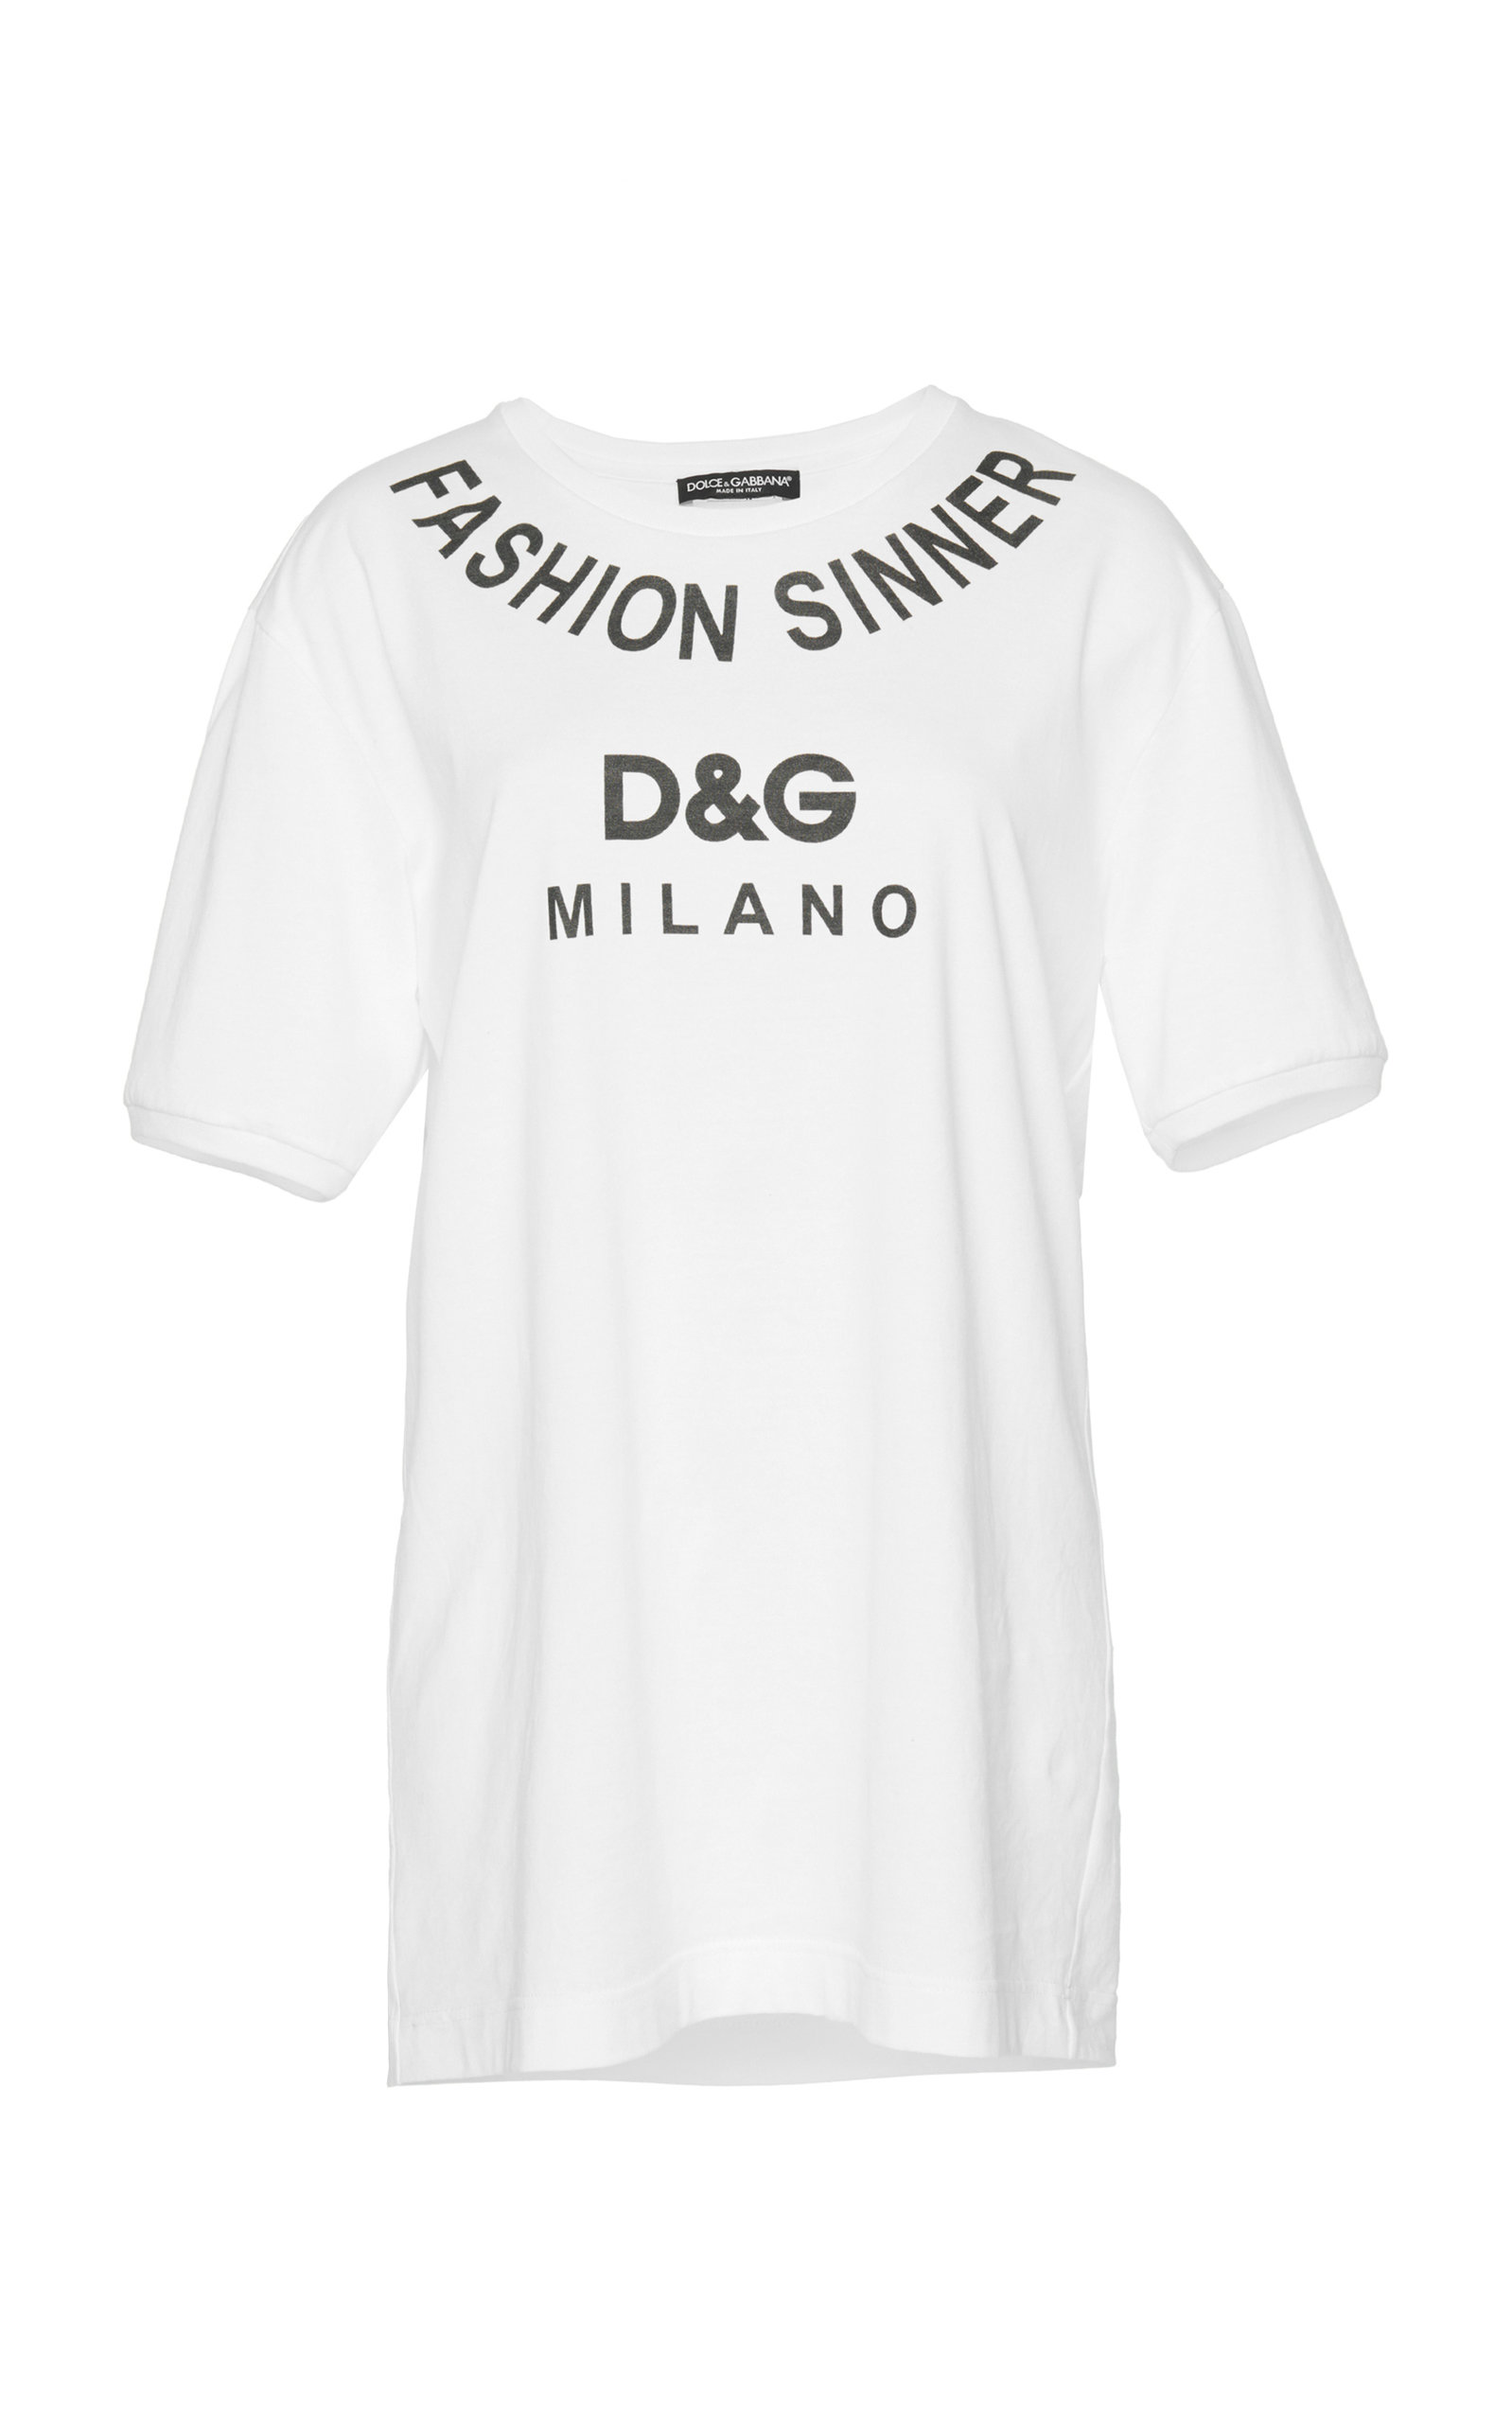 DOLCE & GABBANA Fashion Sinner Printed Jersey T-Shirt, White